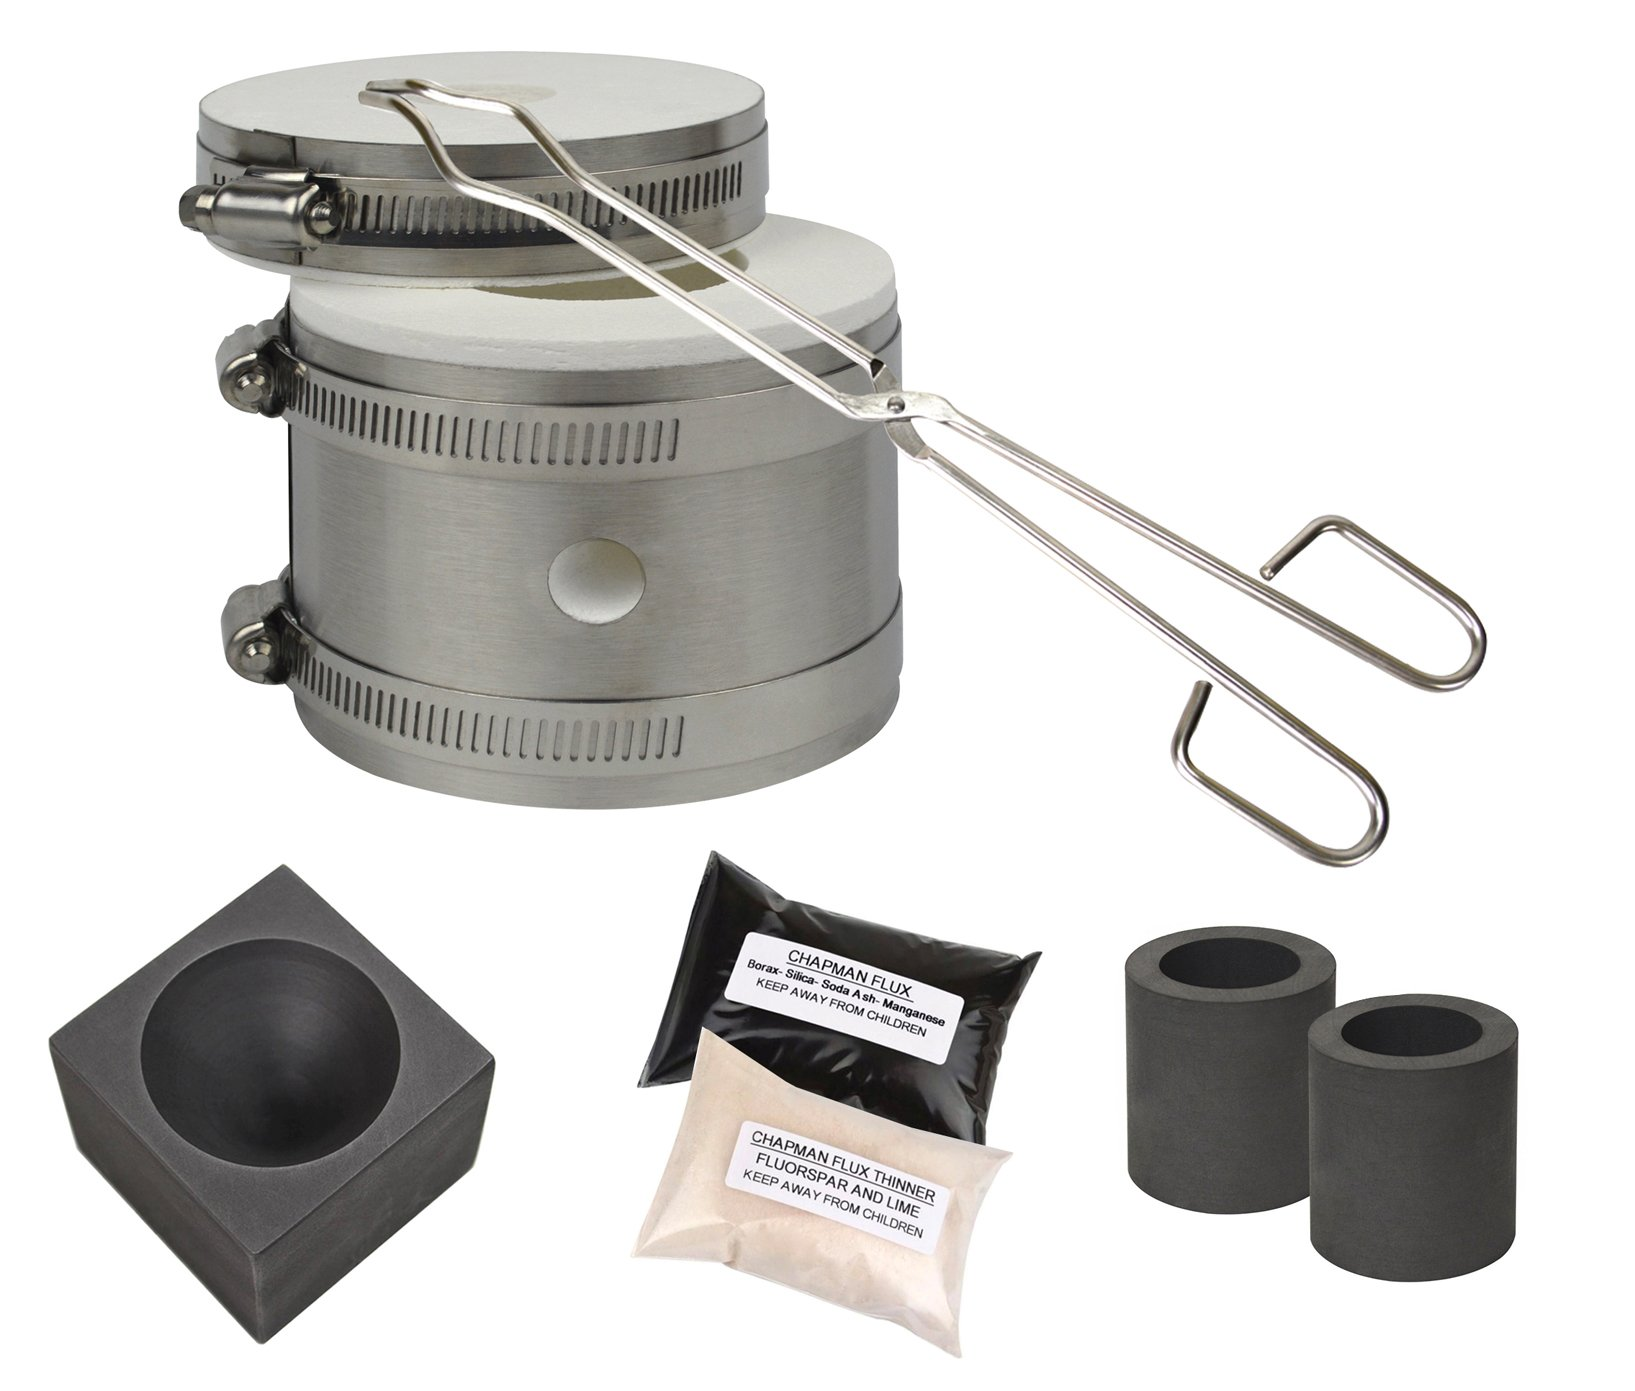 Mini Kwik Kiln Kit w/Tongs Chapman Flux Flux Thinner Conical Mold & 2 Graphite Crucibles Jewelry Making Gold Silver Melting Casting Gas Furnace Kit